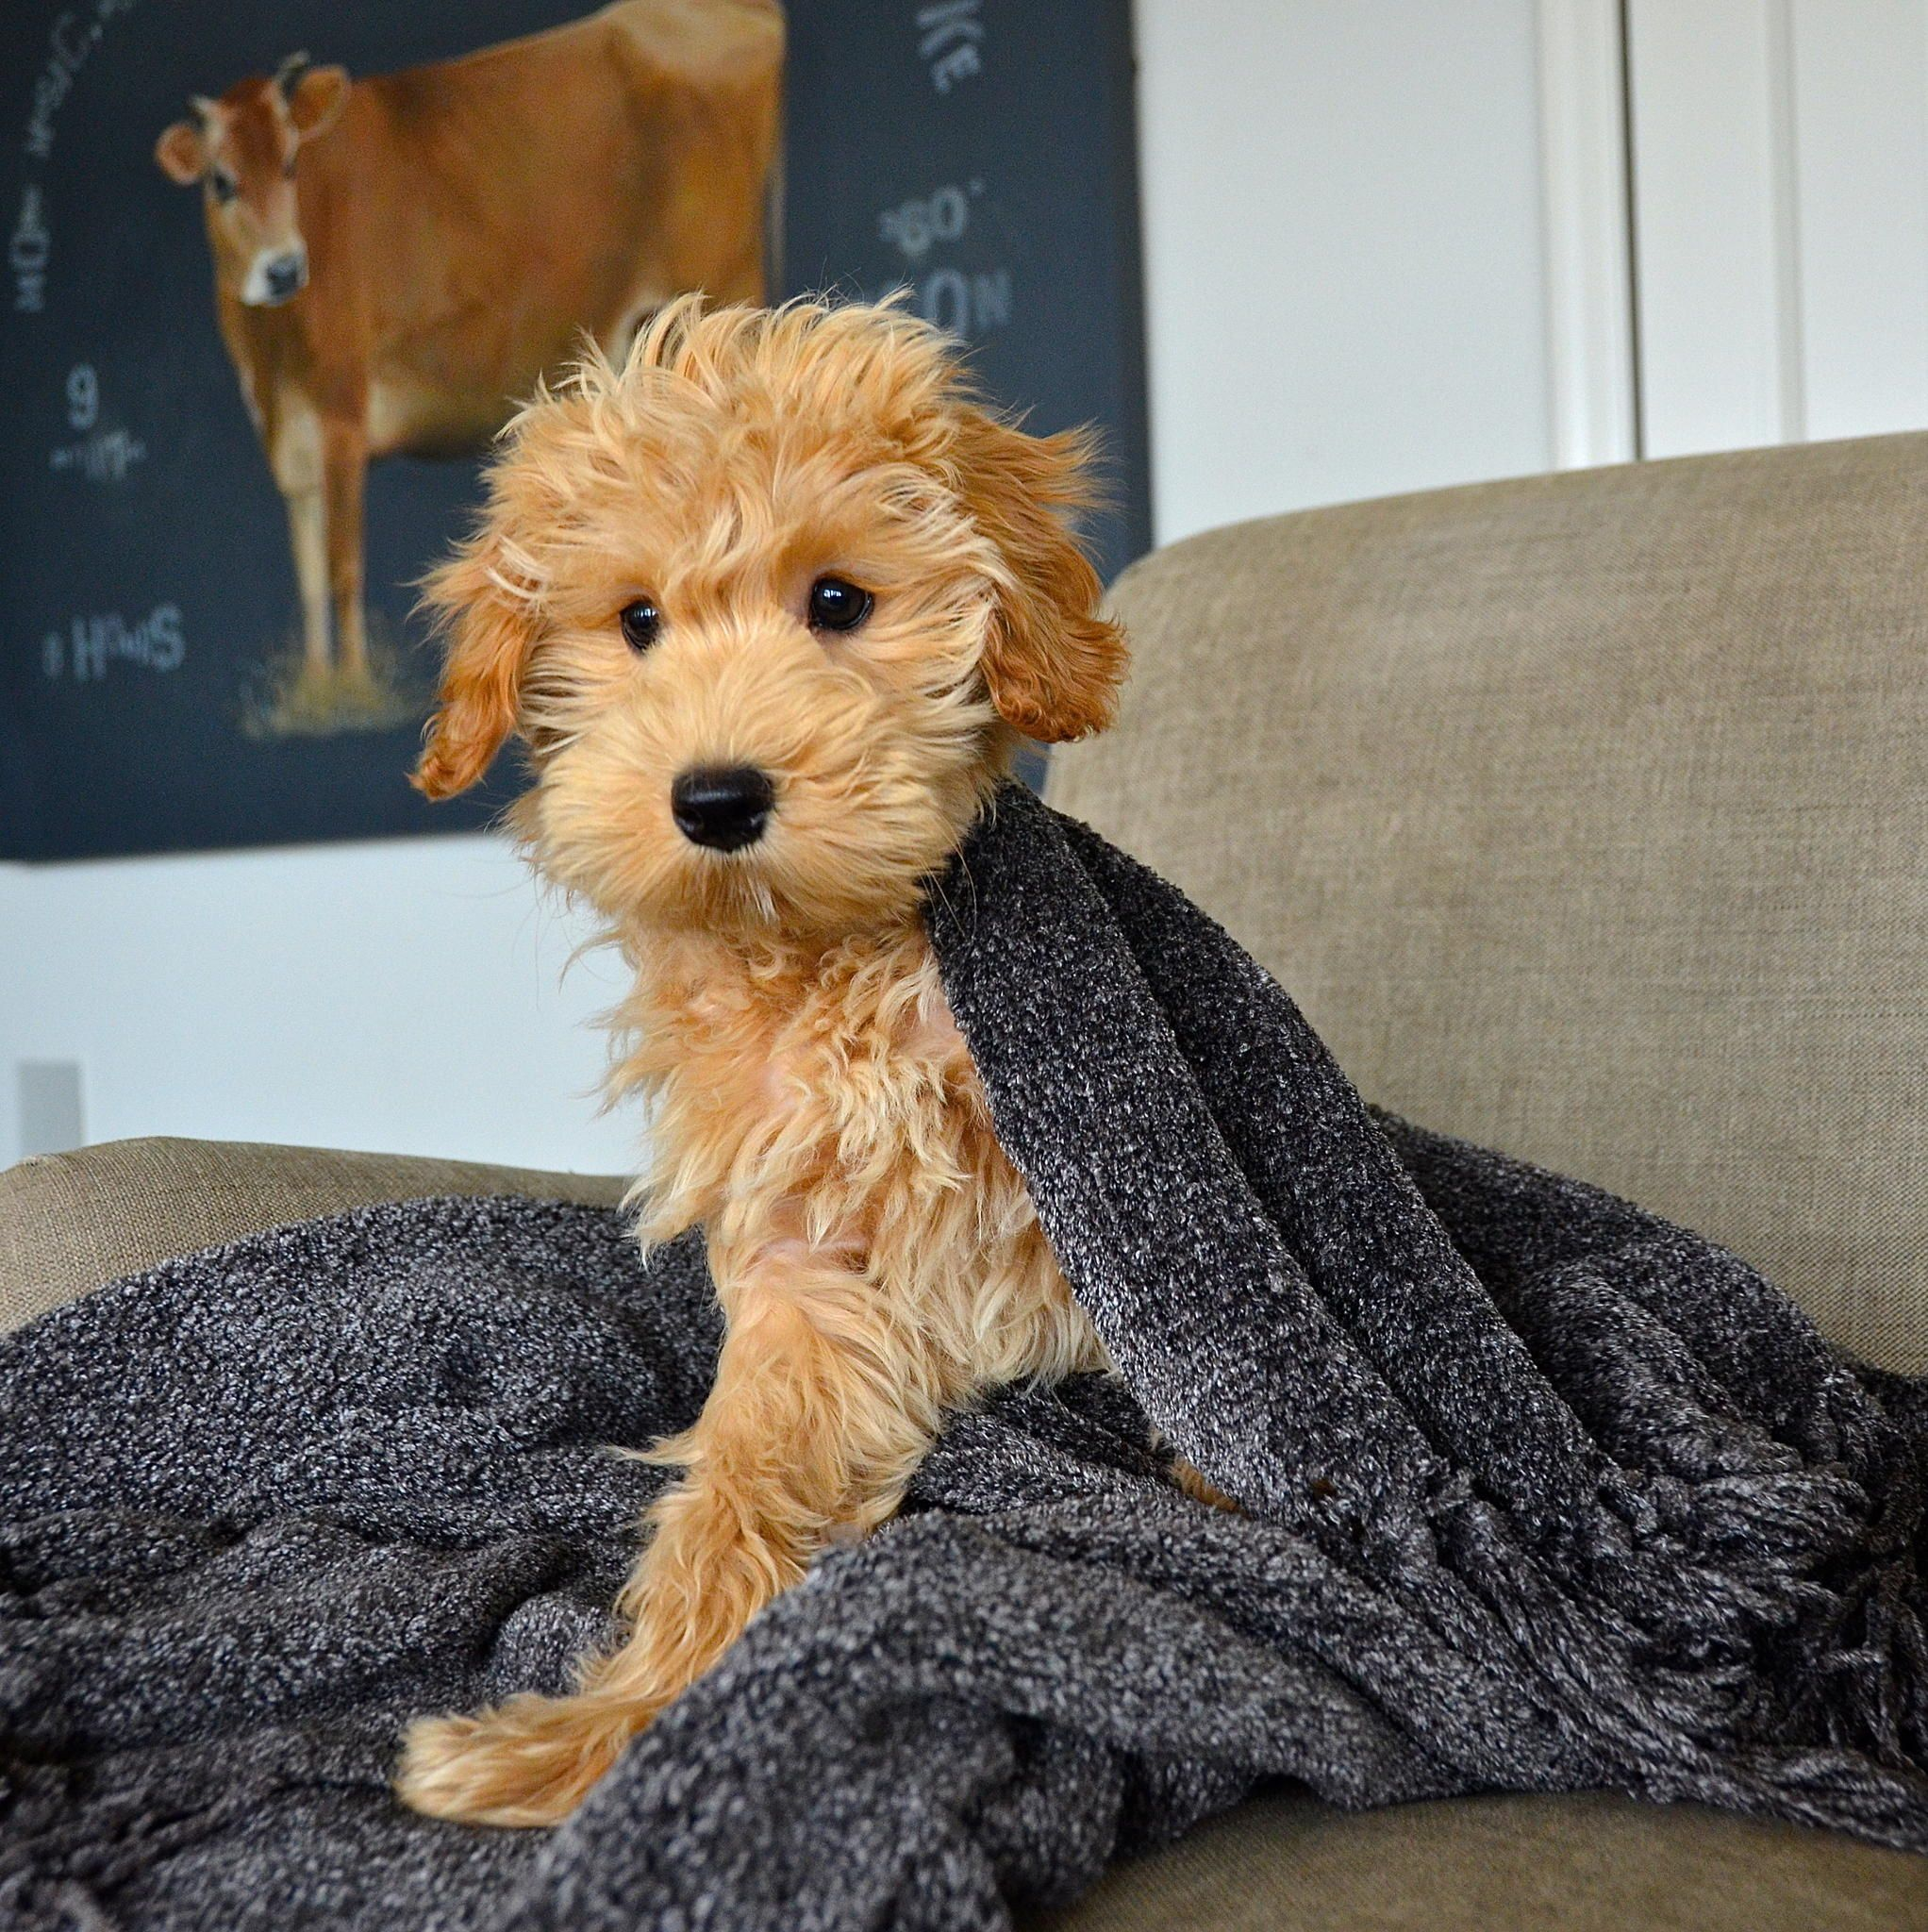 Labradoodle Puppy By Andrea Arden On 500px Labradoodle Puppy